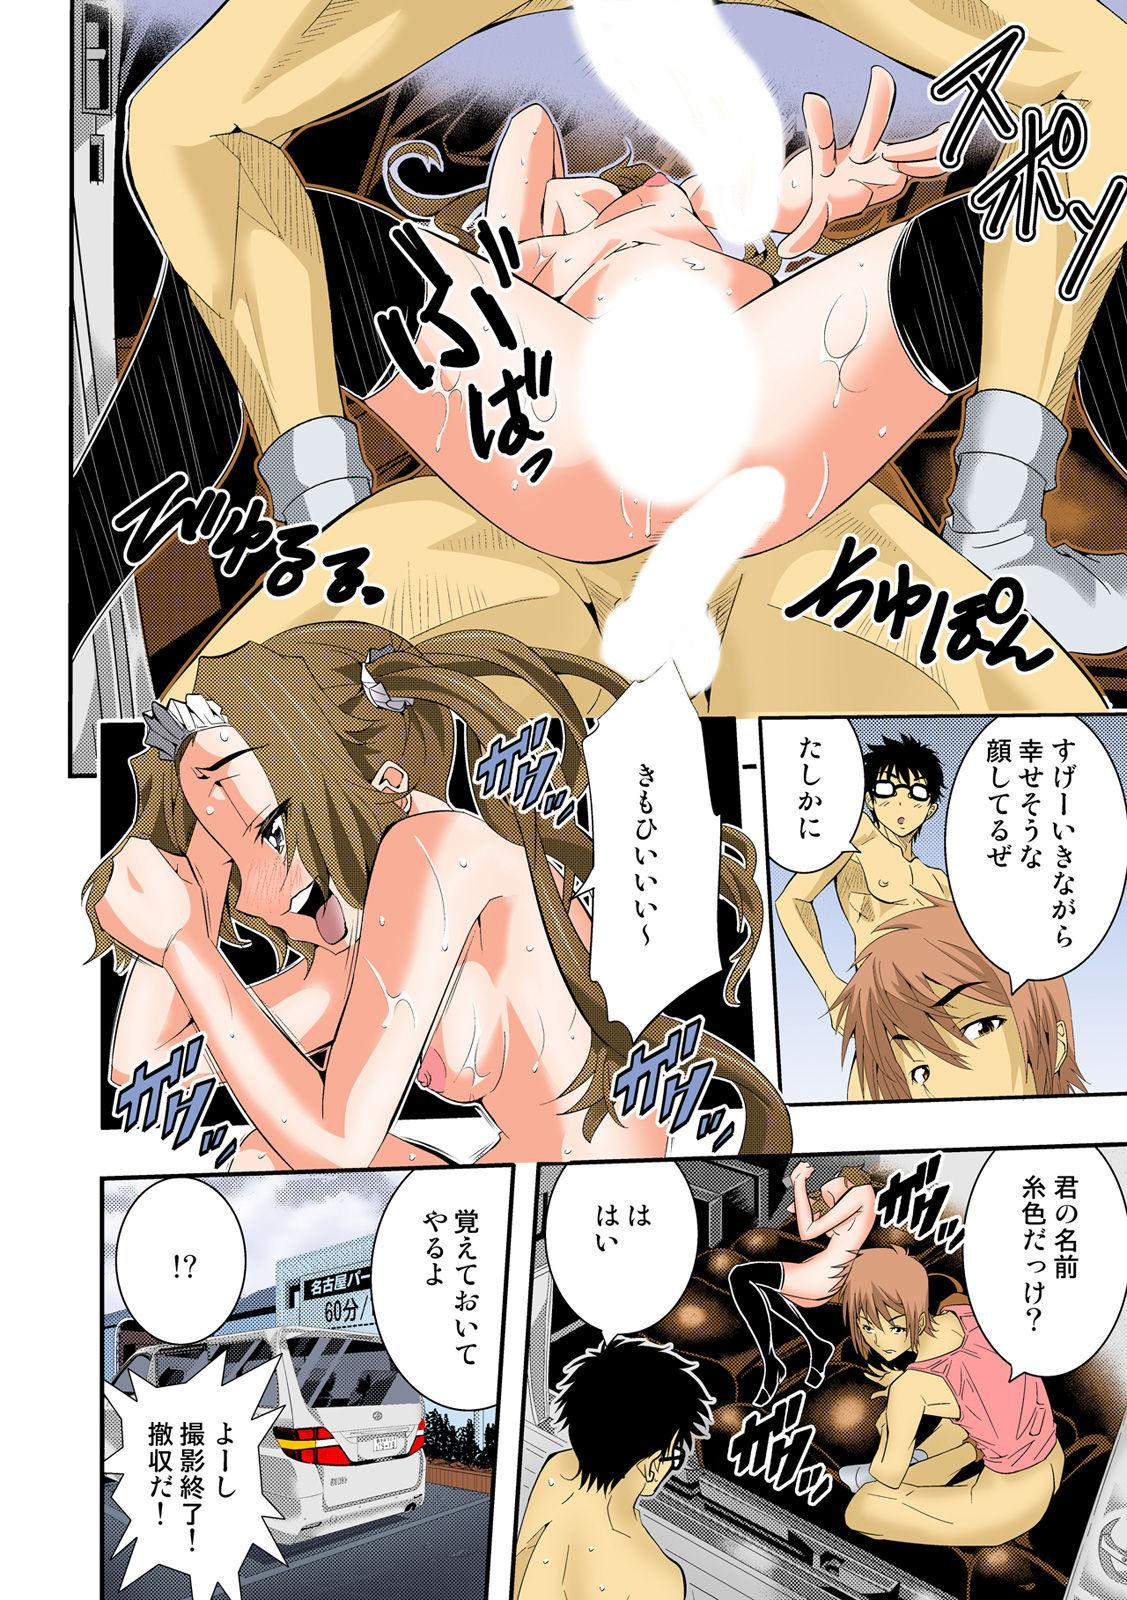 The King of Immortality 〜Get fucked up! The Star of the AV World!〜 【Full Color】 128